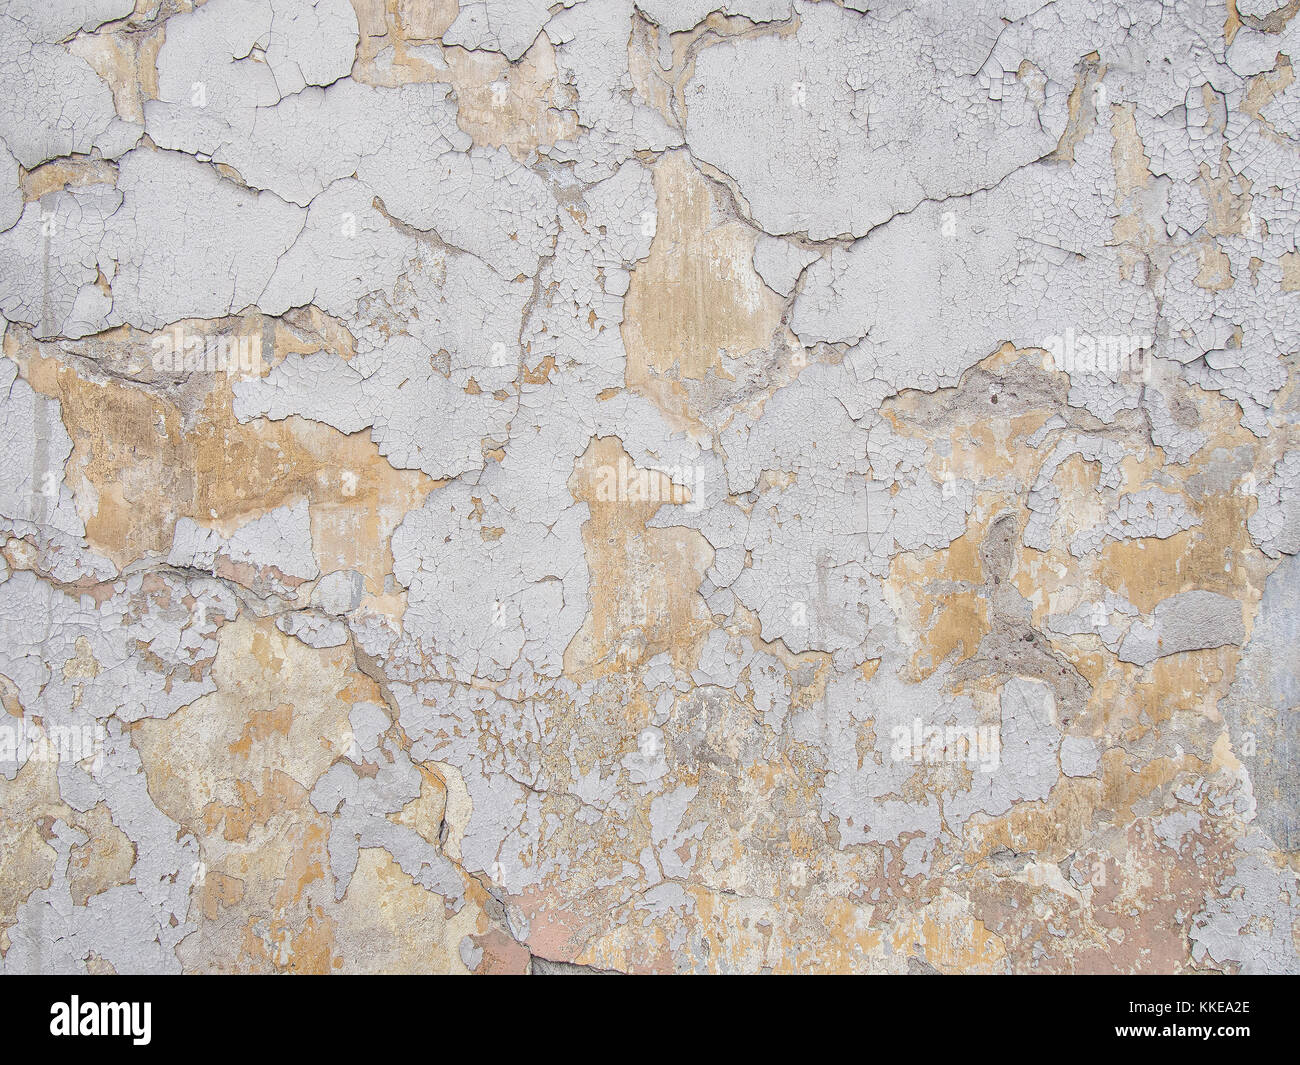 Scuffed plaster wall background - Stock Image